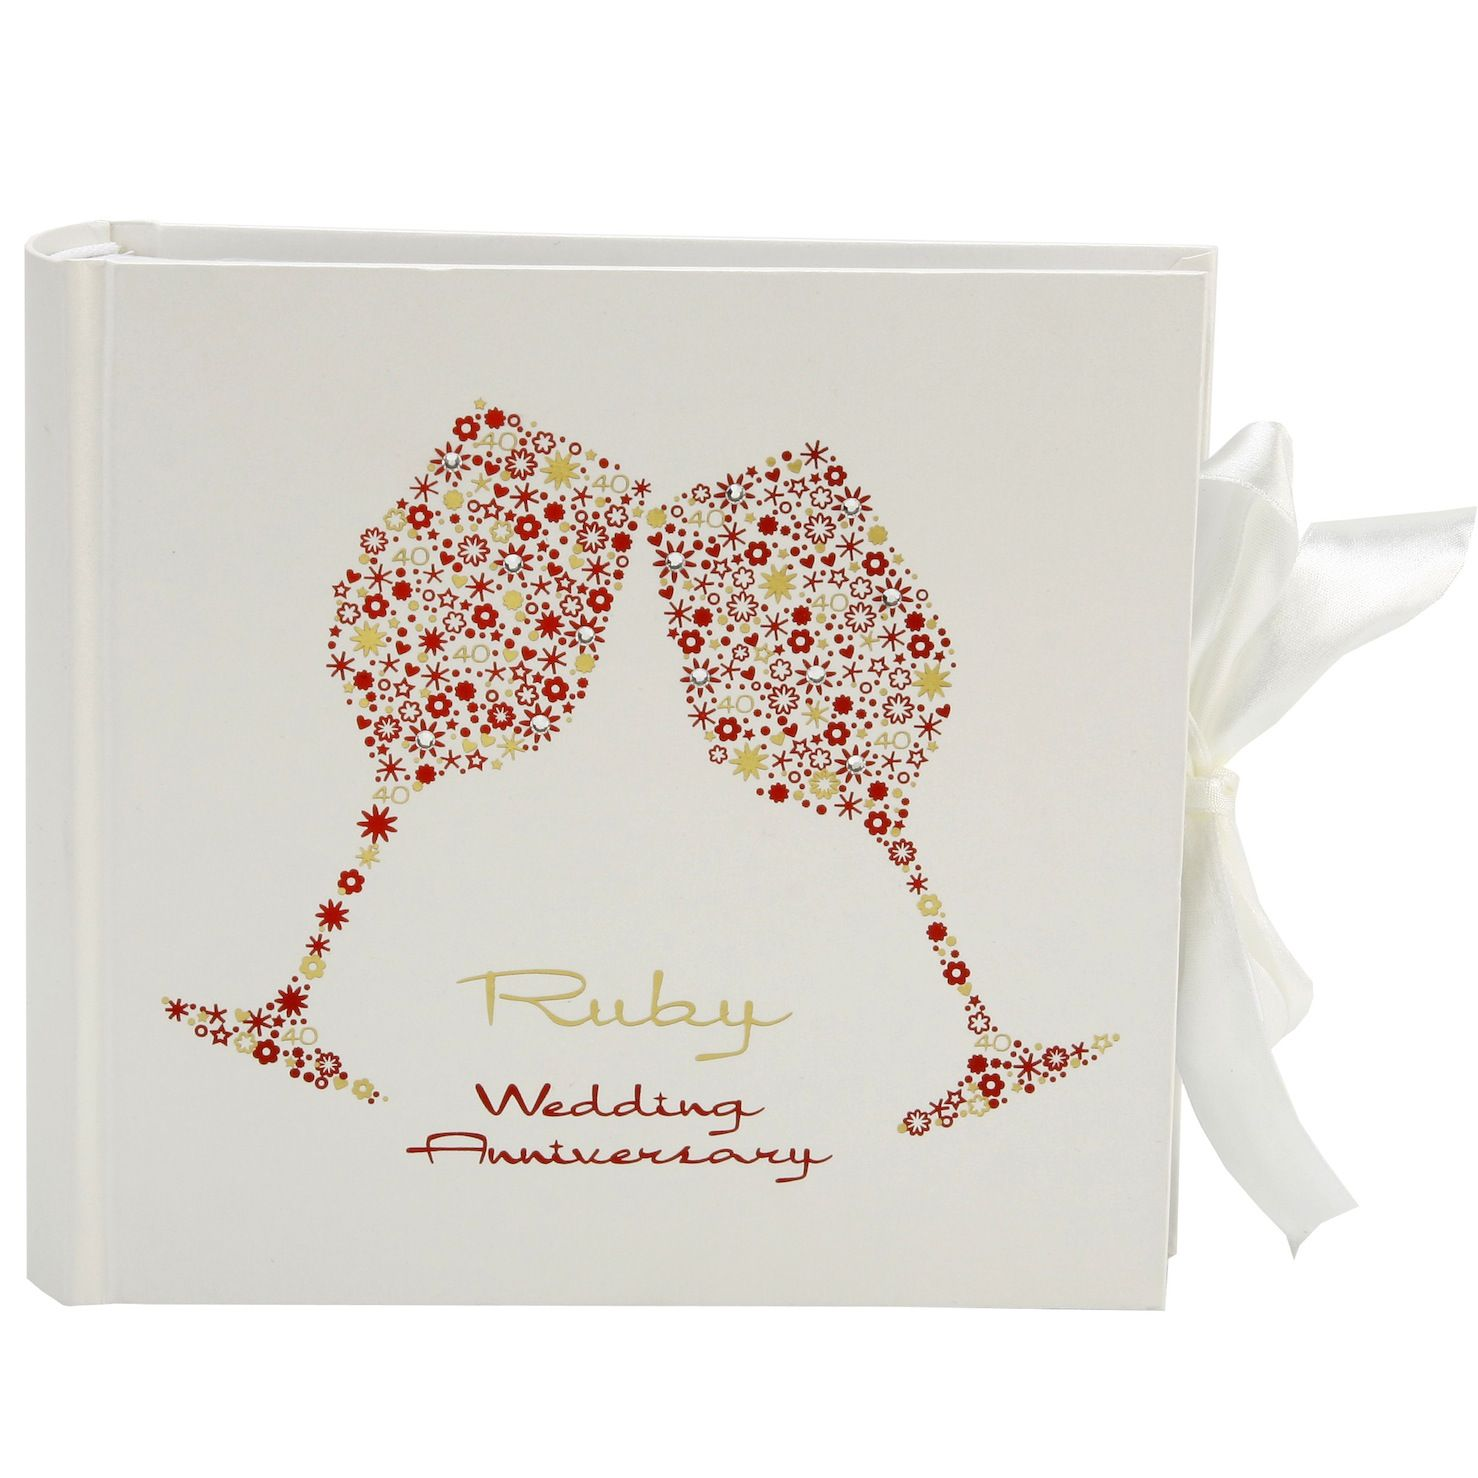 40th wedding anniversary | Ruby Wedding Anniversary Photo Album | 40th Anniversary Gifts